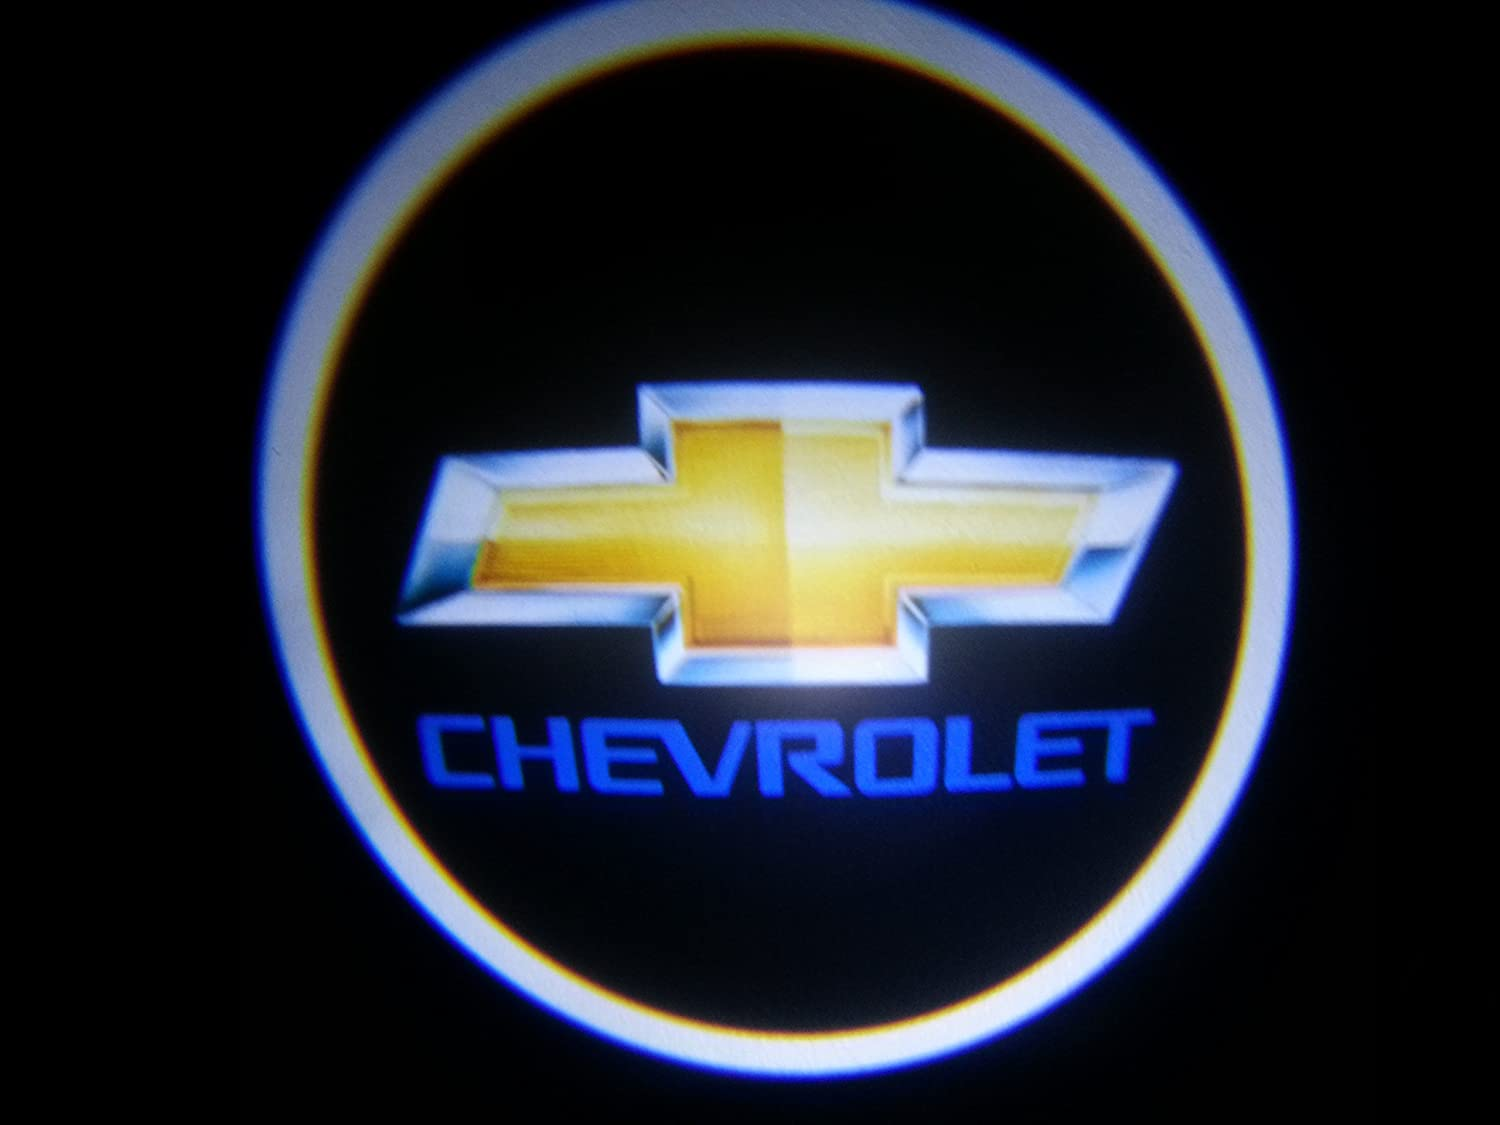 Amazon chevy chevrolet ghost door logo projector shadow amazon chevy chevrolet ghost door logo projector shadow puddle laser led lights 7w qty 2 from usa musical instruments buycottarizona Image collections